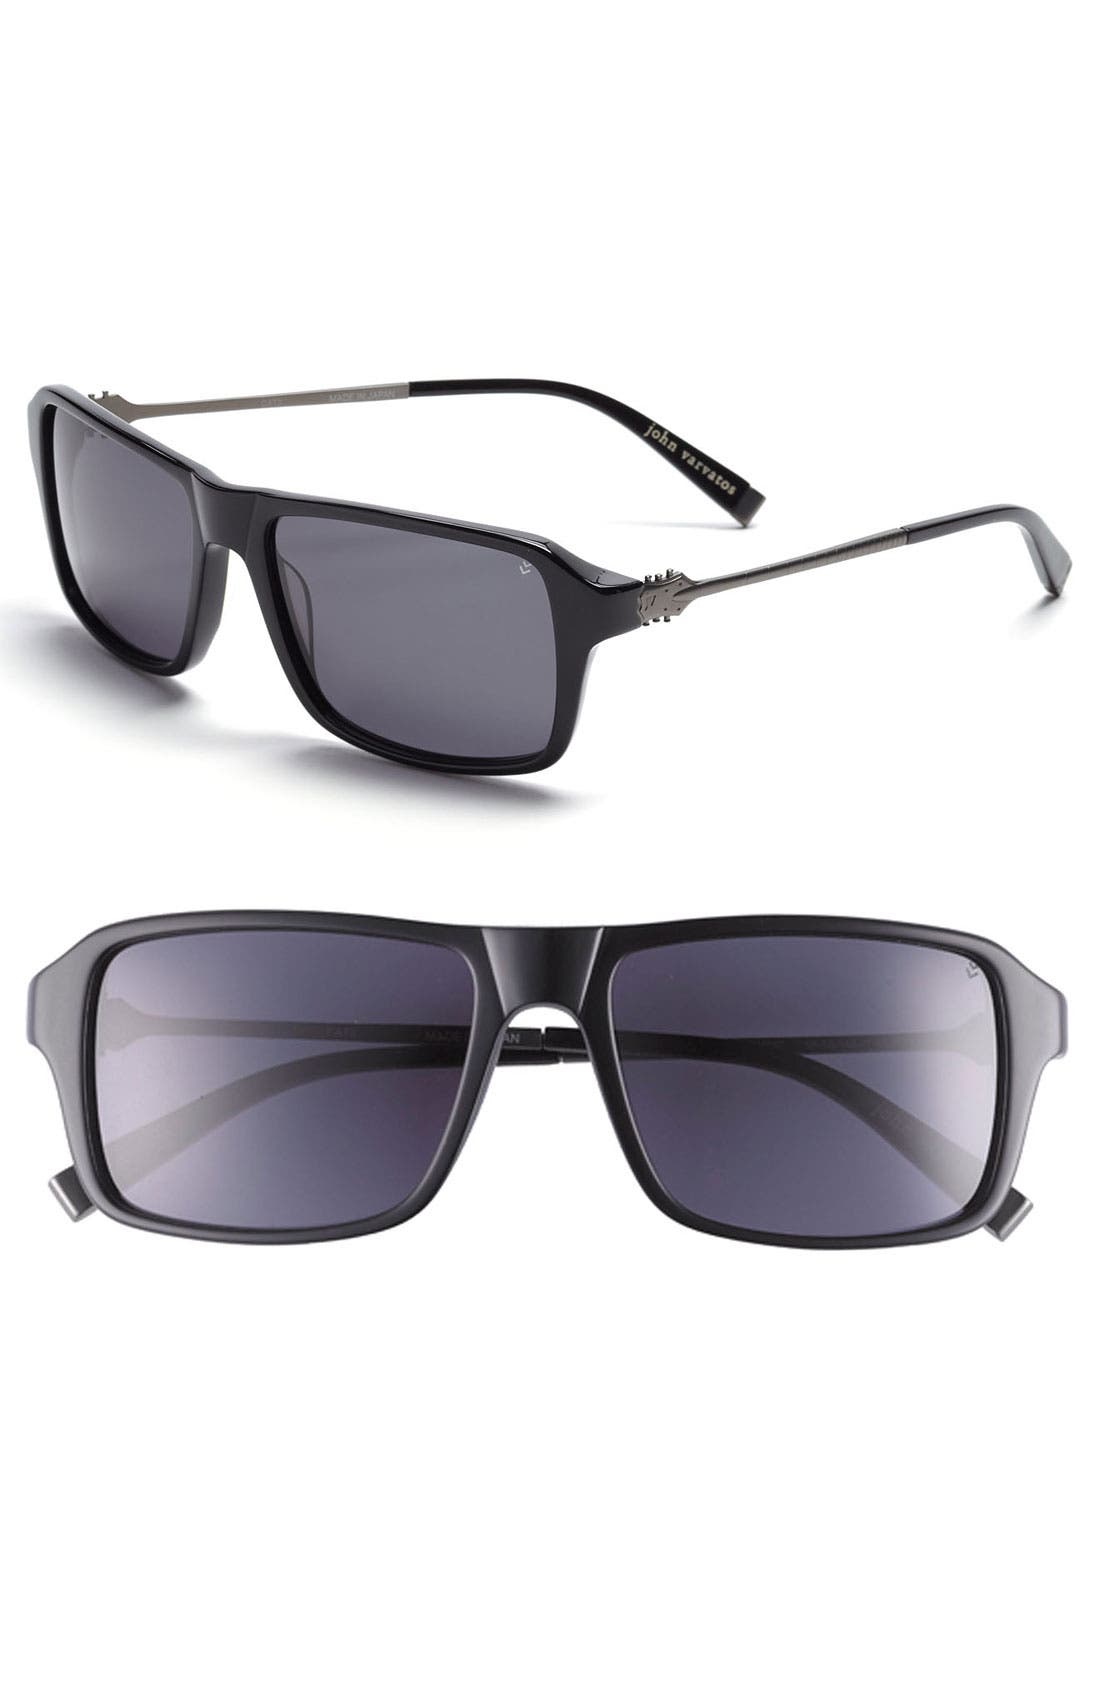 Main Image - John Varvatos Collection 58mm Sunglasses